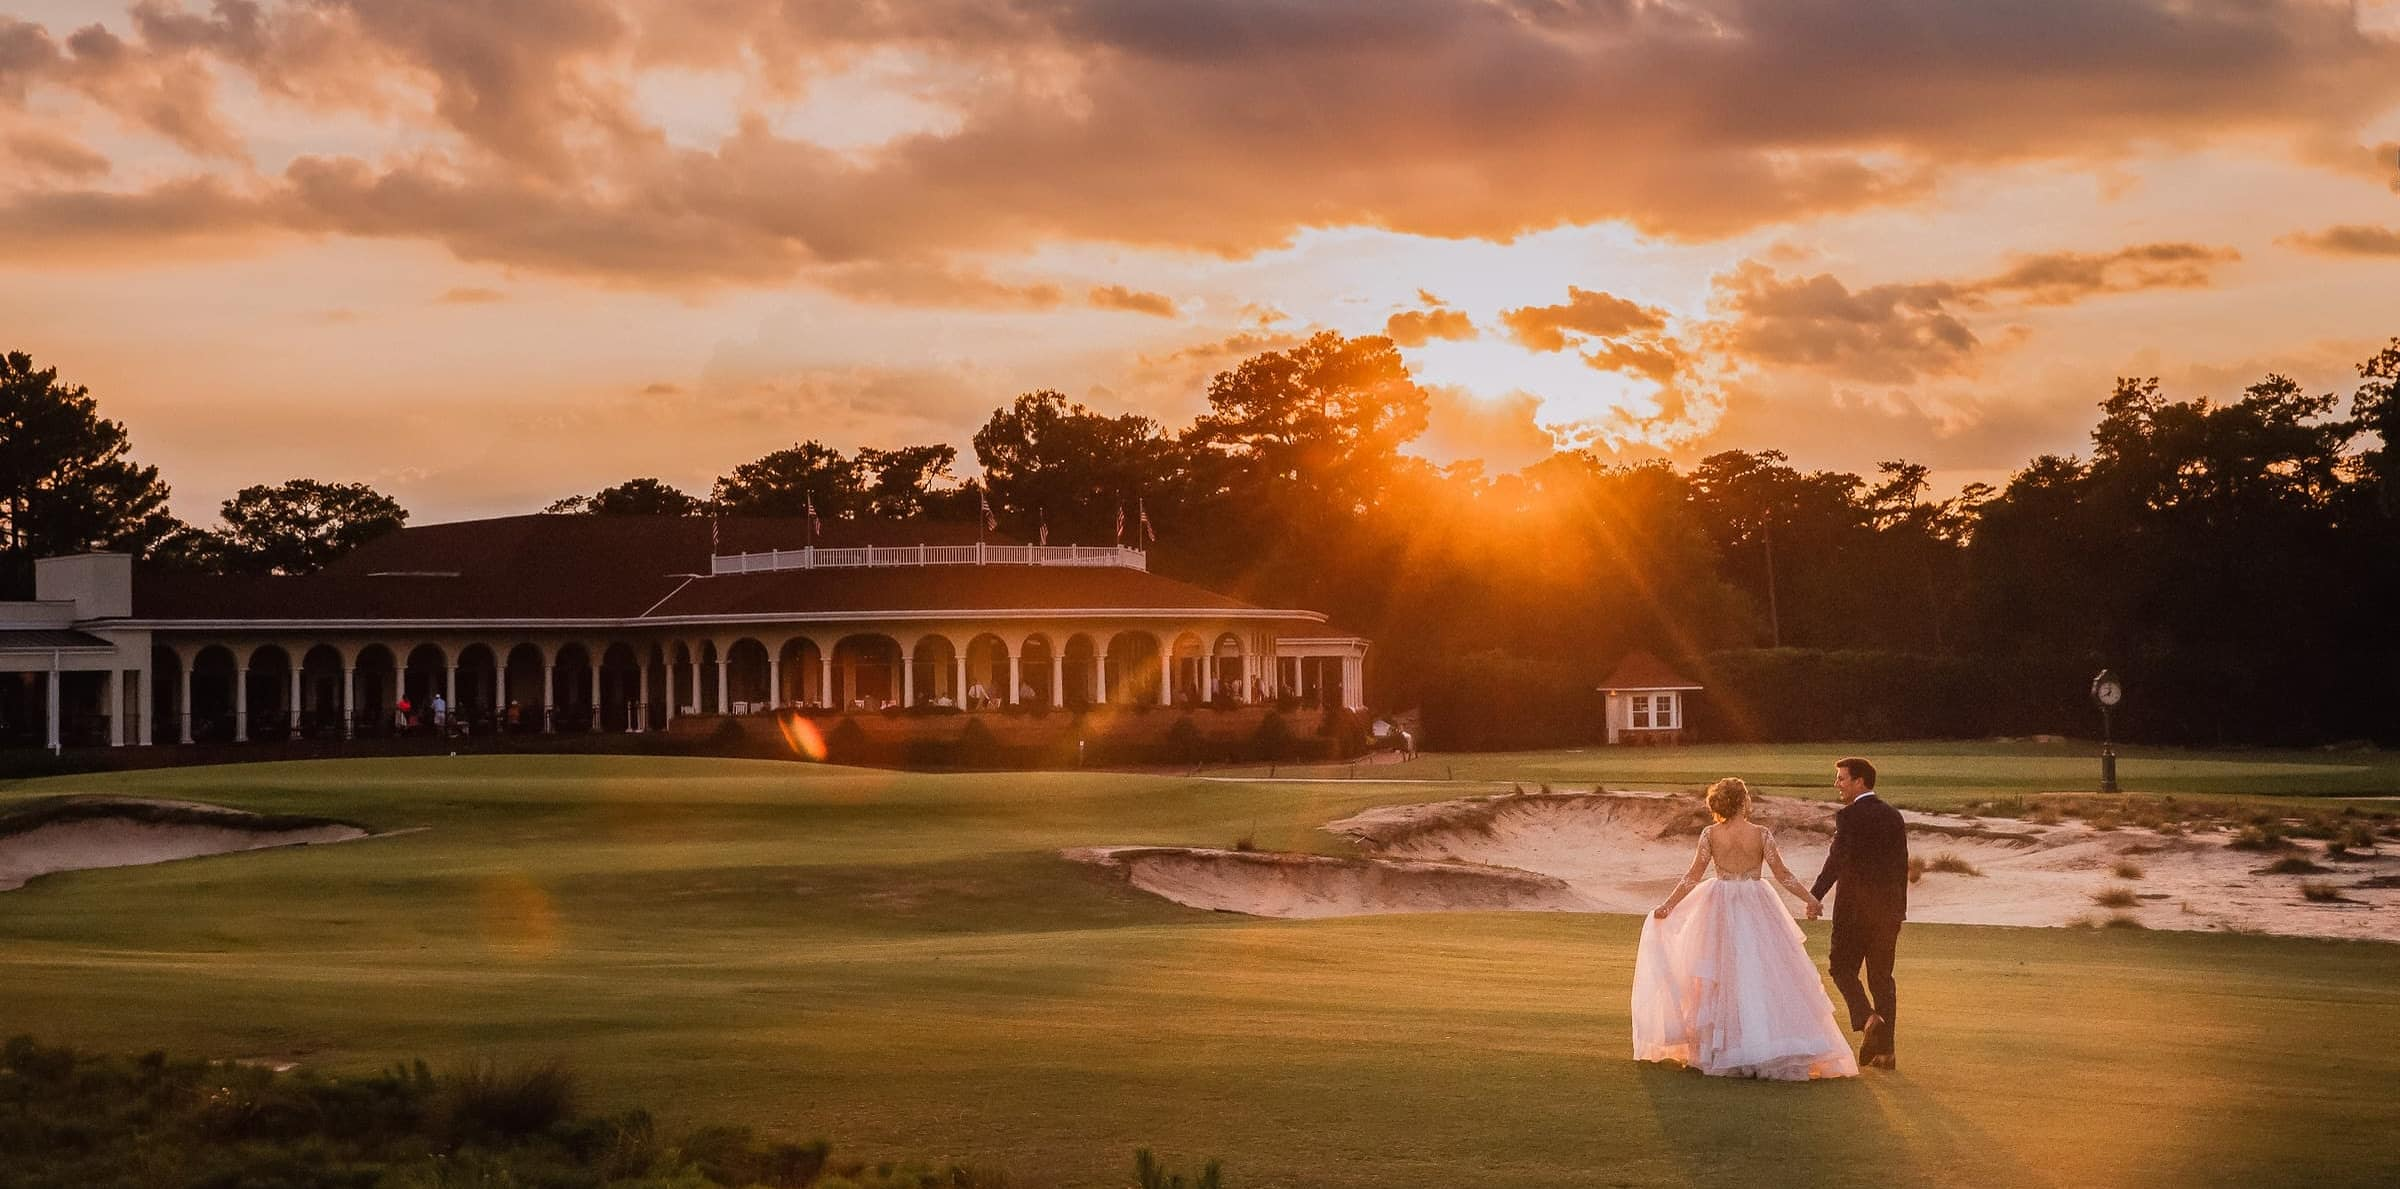 pinehurst-resort-wedding-bride-groom-at-sunset-2-exposure